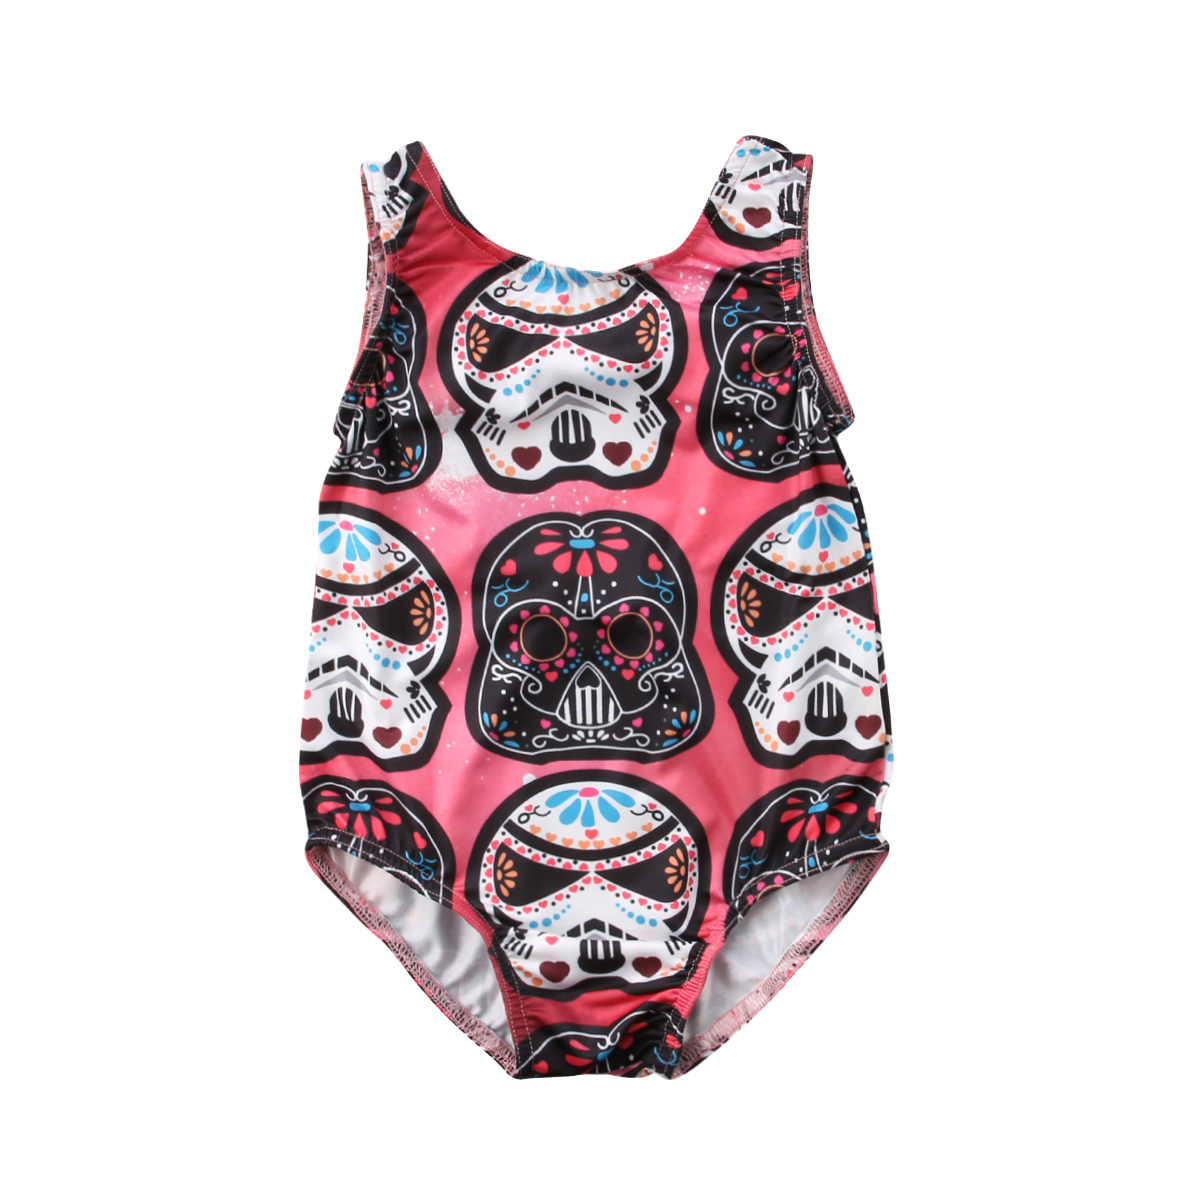 Cute Newborn Baby Boys Girls Clothing Tops Bodysuit Sleeveless Backless Summer Jumpsuit Outfit Clothes Baby Boy 0-24M